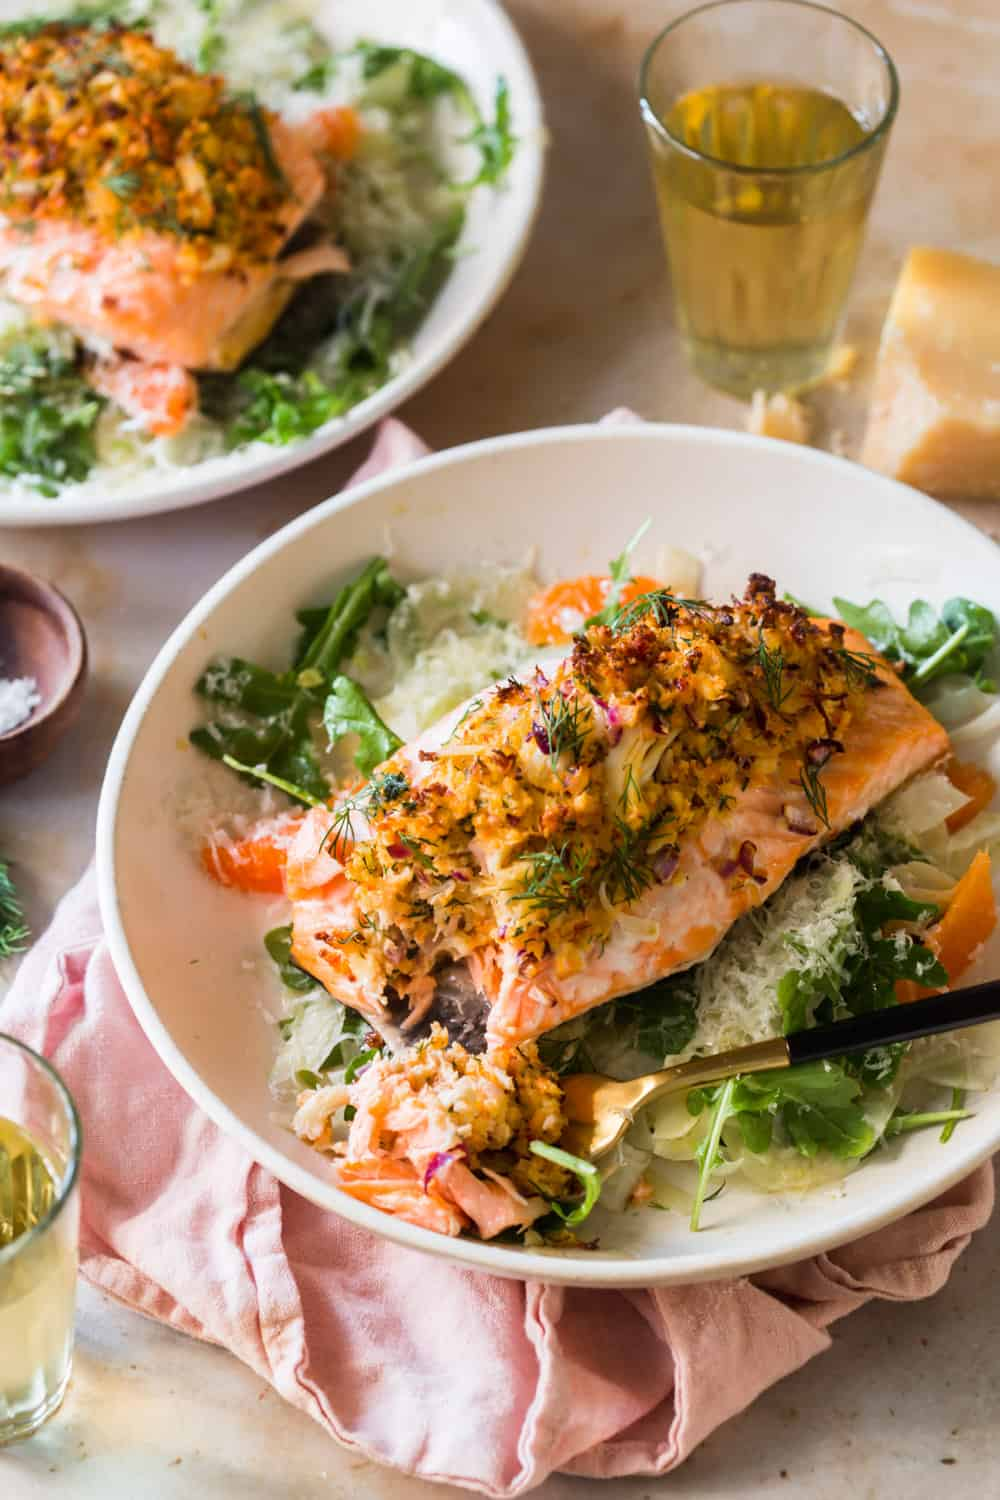 White plate with stuffed salmon on top of a green salad